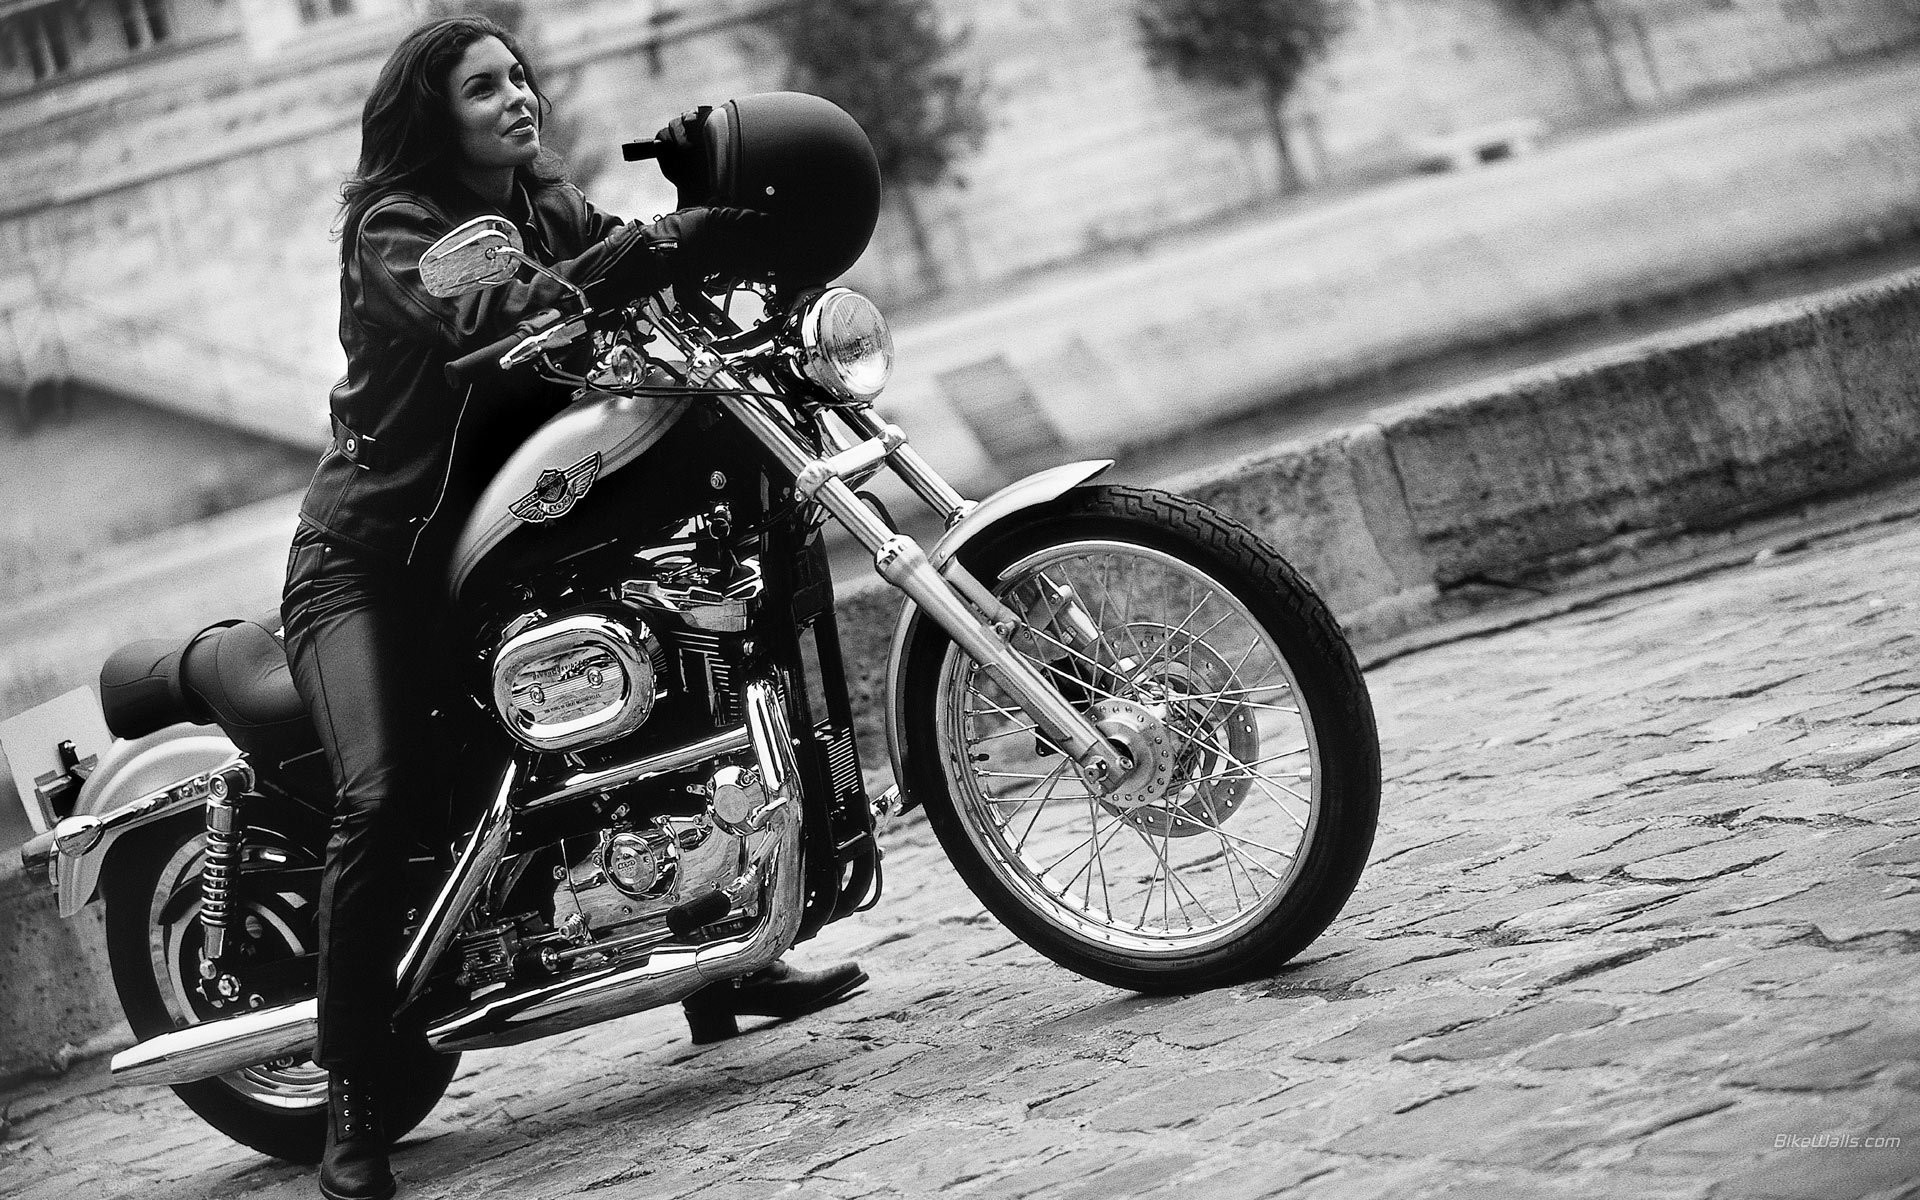 Motorcycle girl wallpaper 70 images more wallpaper collections sciox Image collections